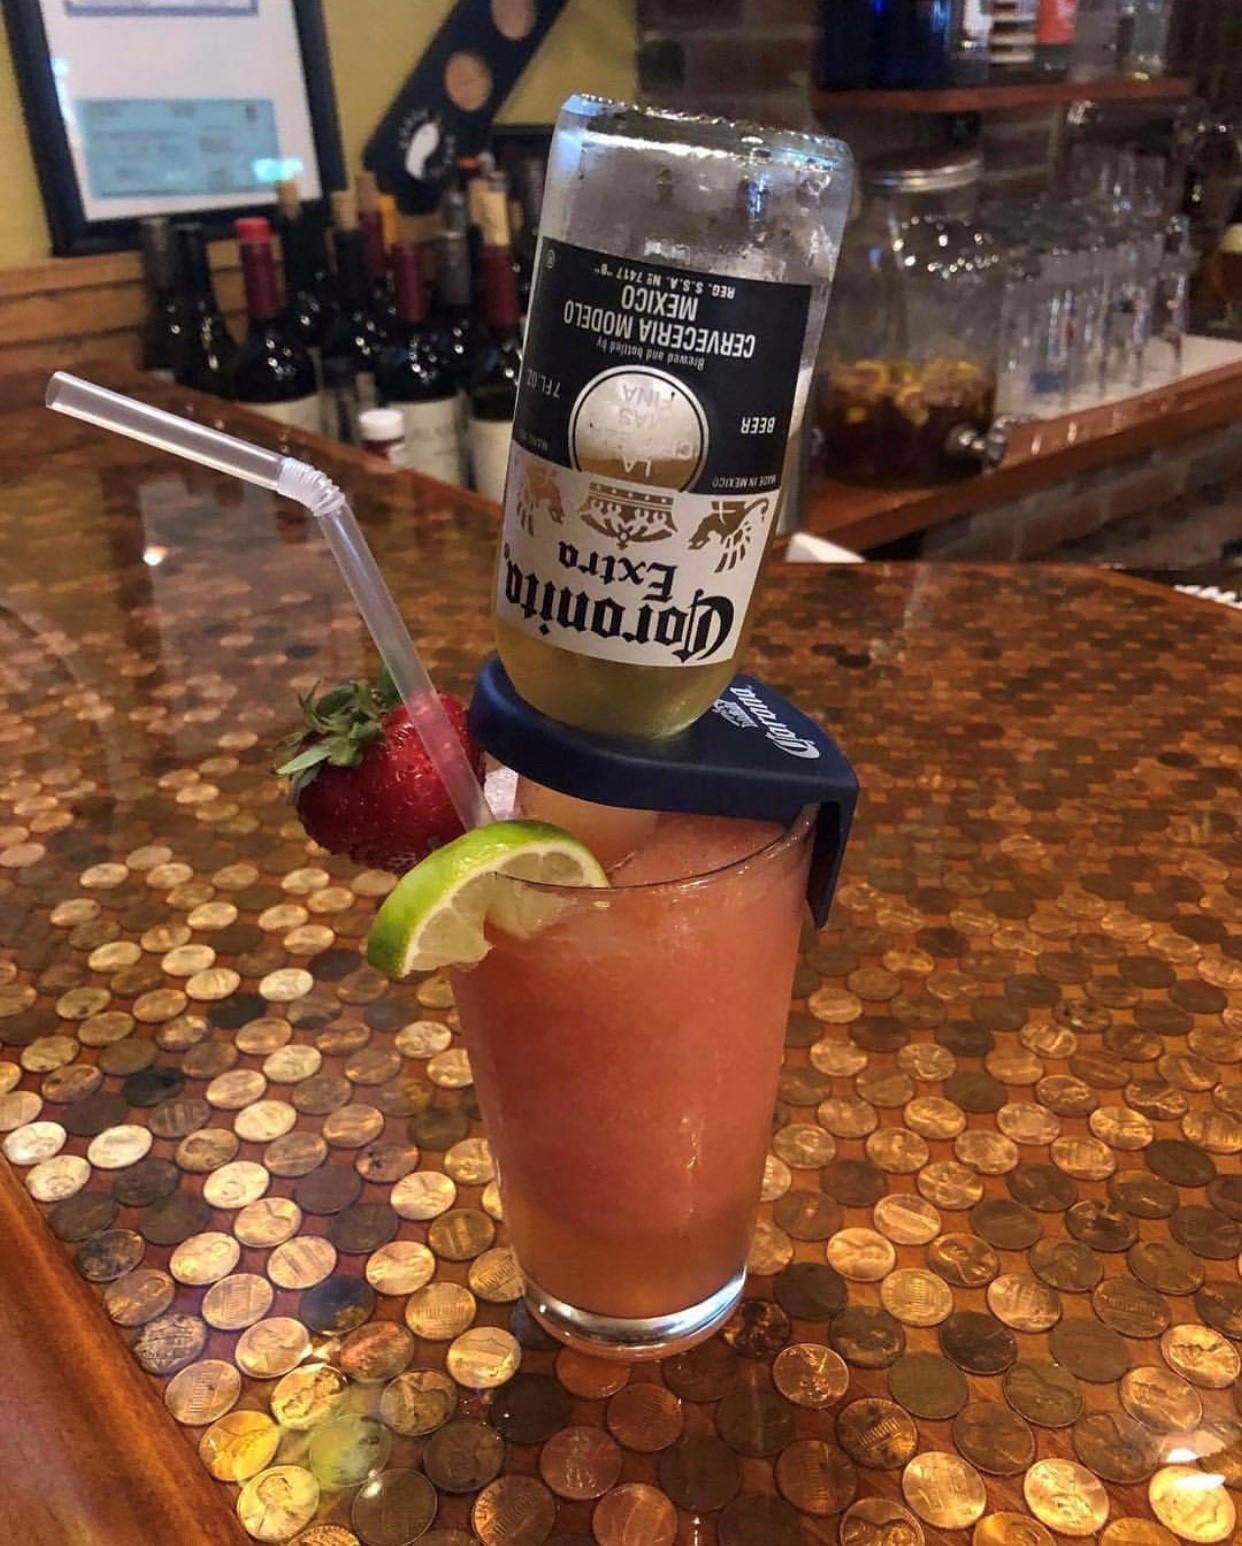 strawberry margarita with a small corona upside down in it